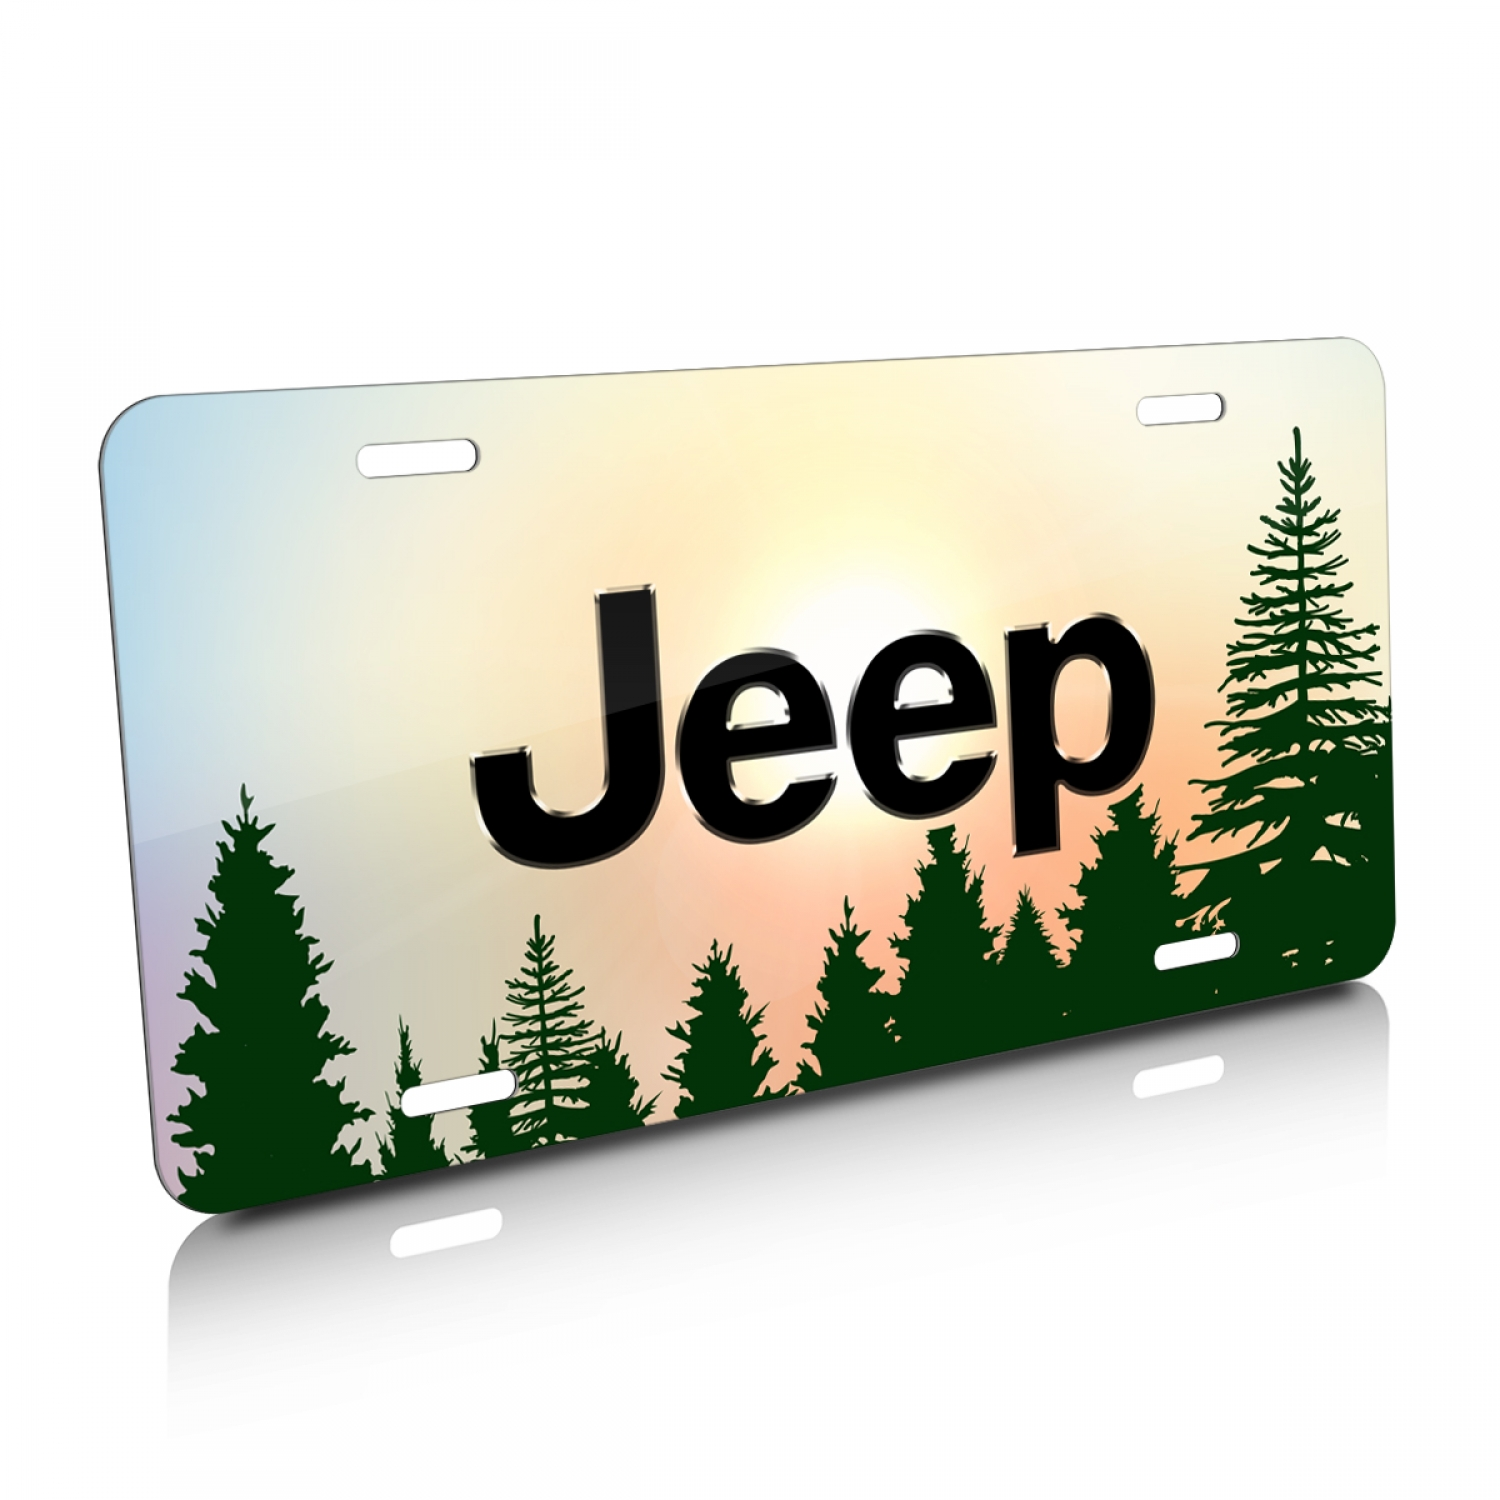 Jeep Green Forrest Sillhouette Graphic Aluminum License Plate